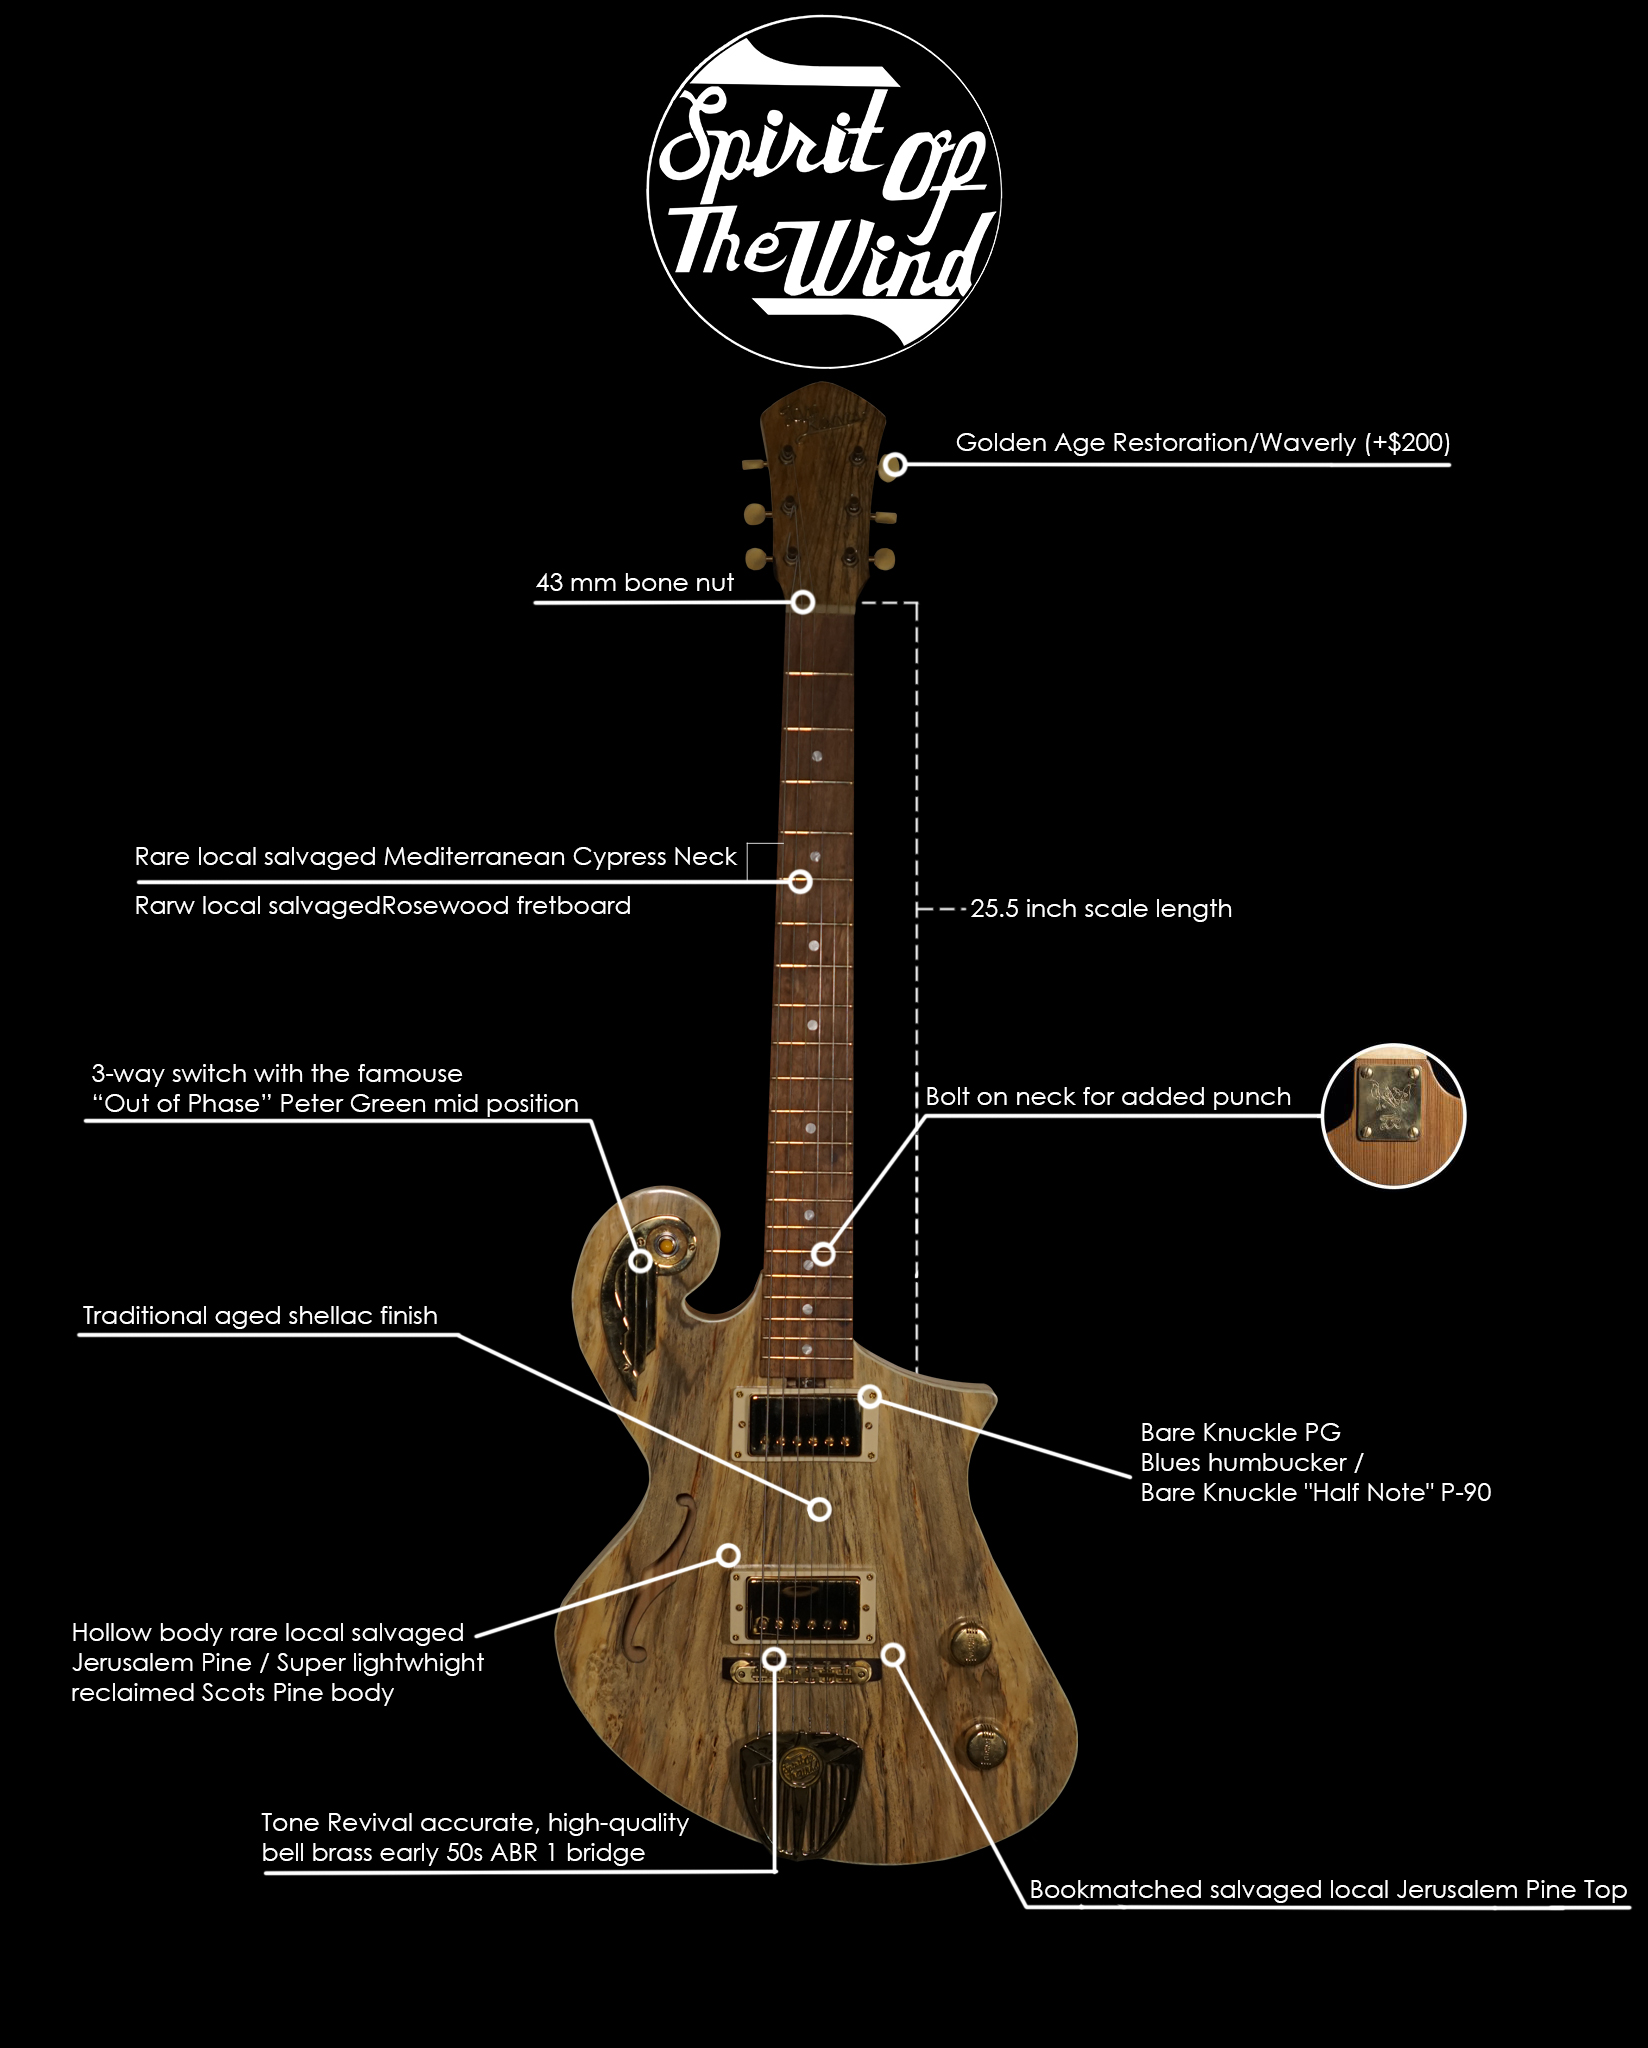 Handmade Guitar made from Jerusalem Pine |Guitar Specs | - Spirit of the Wind by Tone Revival Guitars